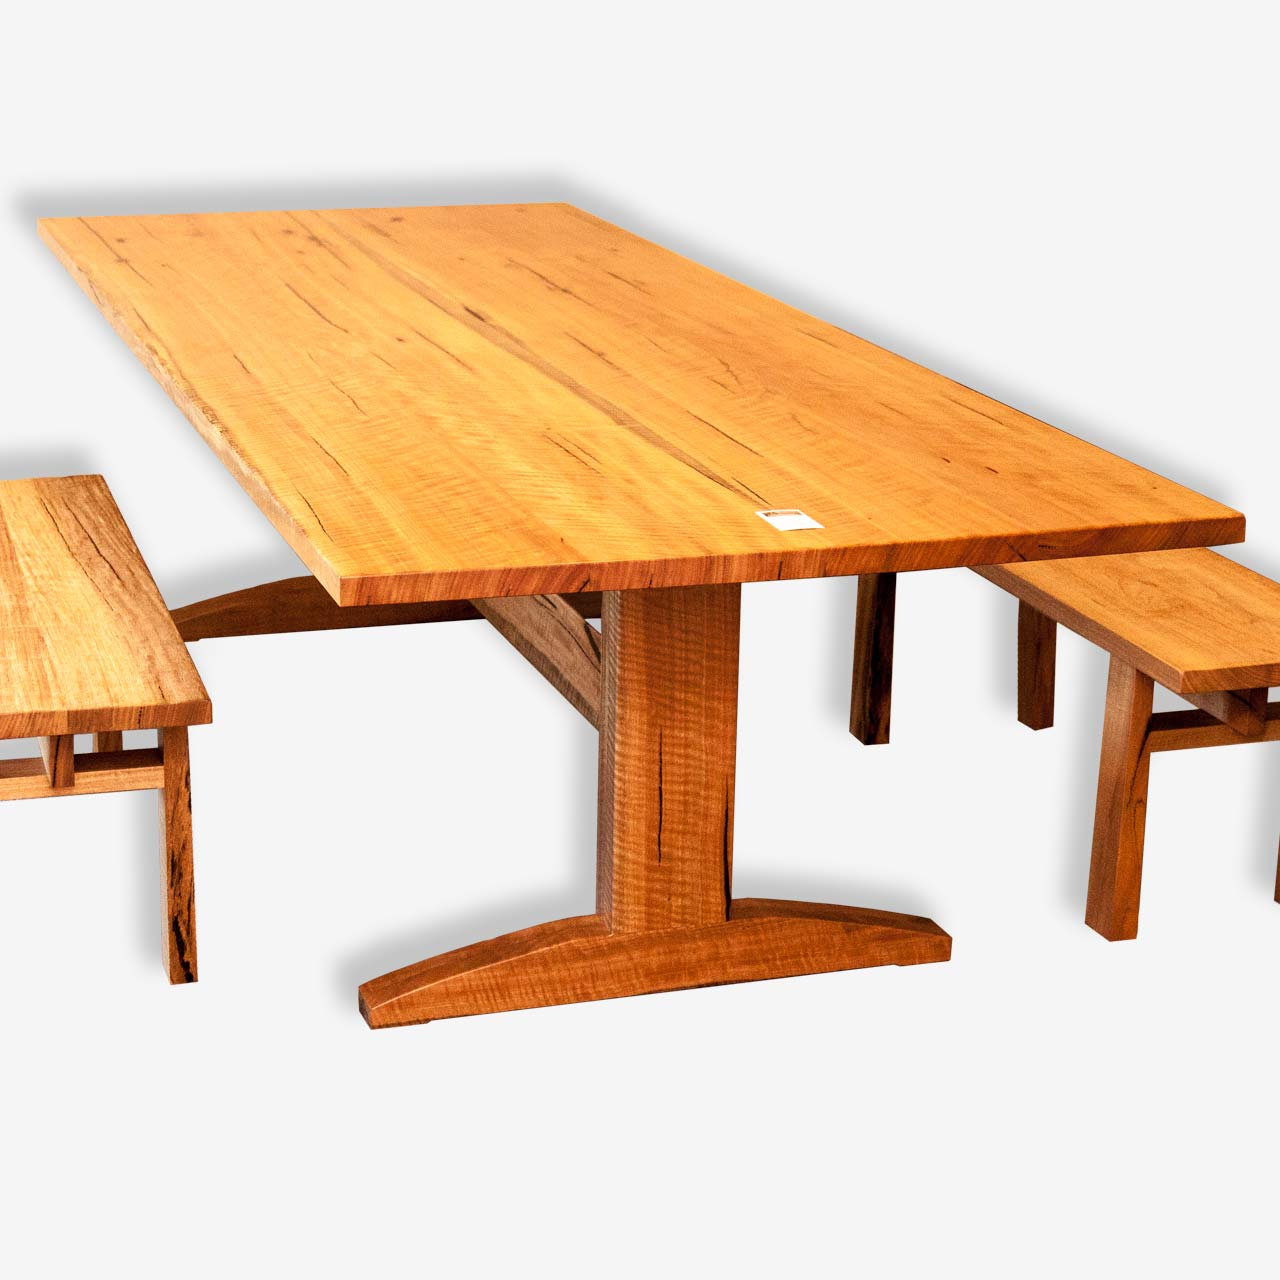 Marri Dining Table | 'Trestle' | Treeton Fine Wood Studio Pertaining To Best And Newest Nerida Trestle Dining Tables (View 9 of 15)